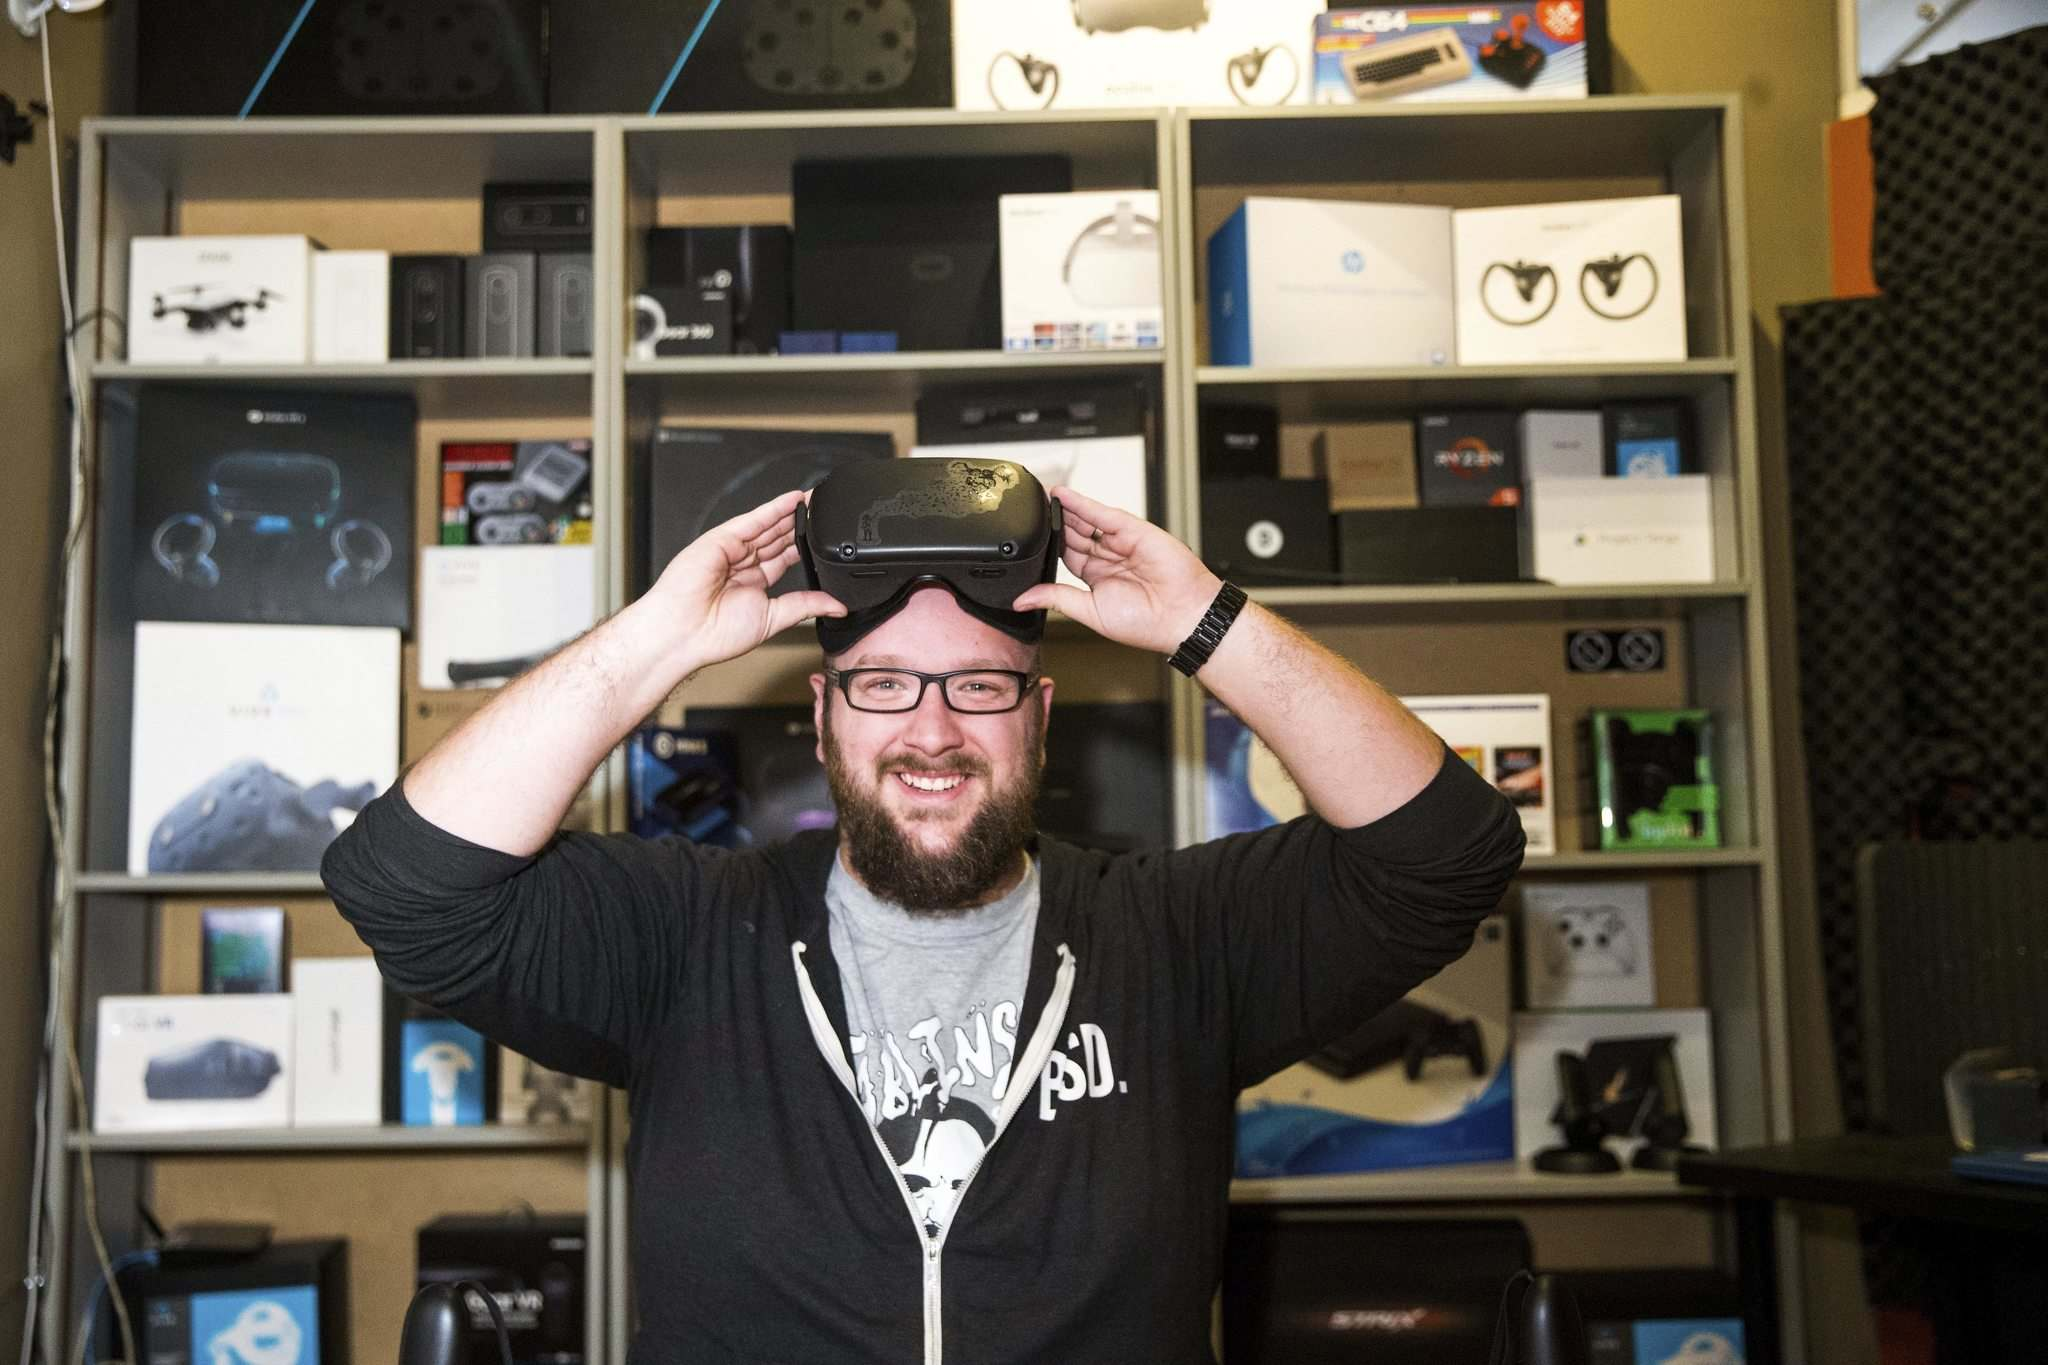 MIKAELA MACKENZIE / WINNIPEG FREE PRESS</p><p>Dan Blair, founder and president of Winnipeg-based virtual-reality-technology company Bit Space Development, expects the firm will double in size by the end of next year. </p>